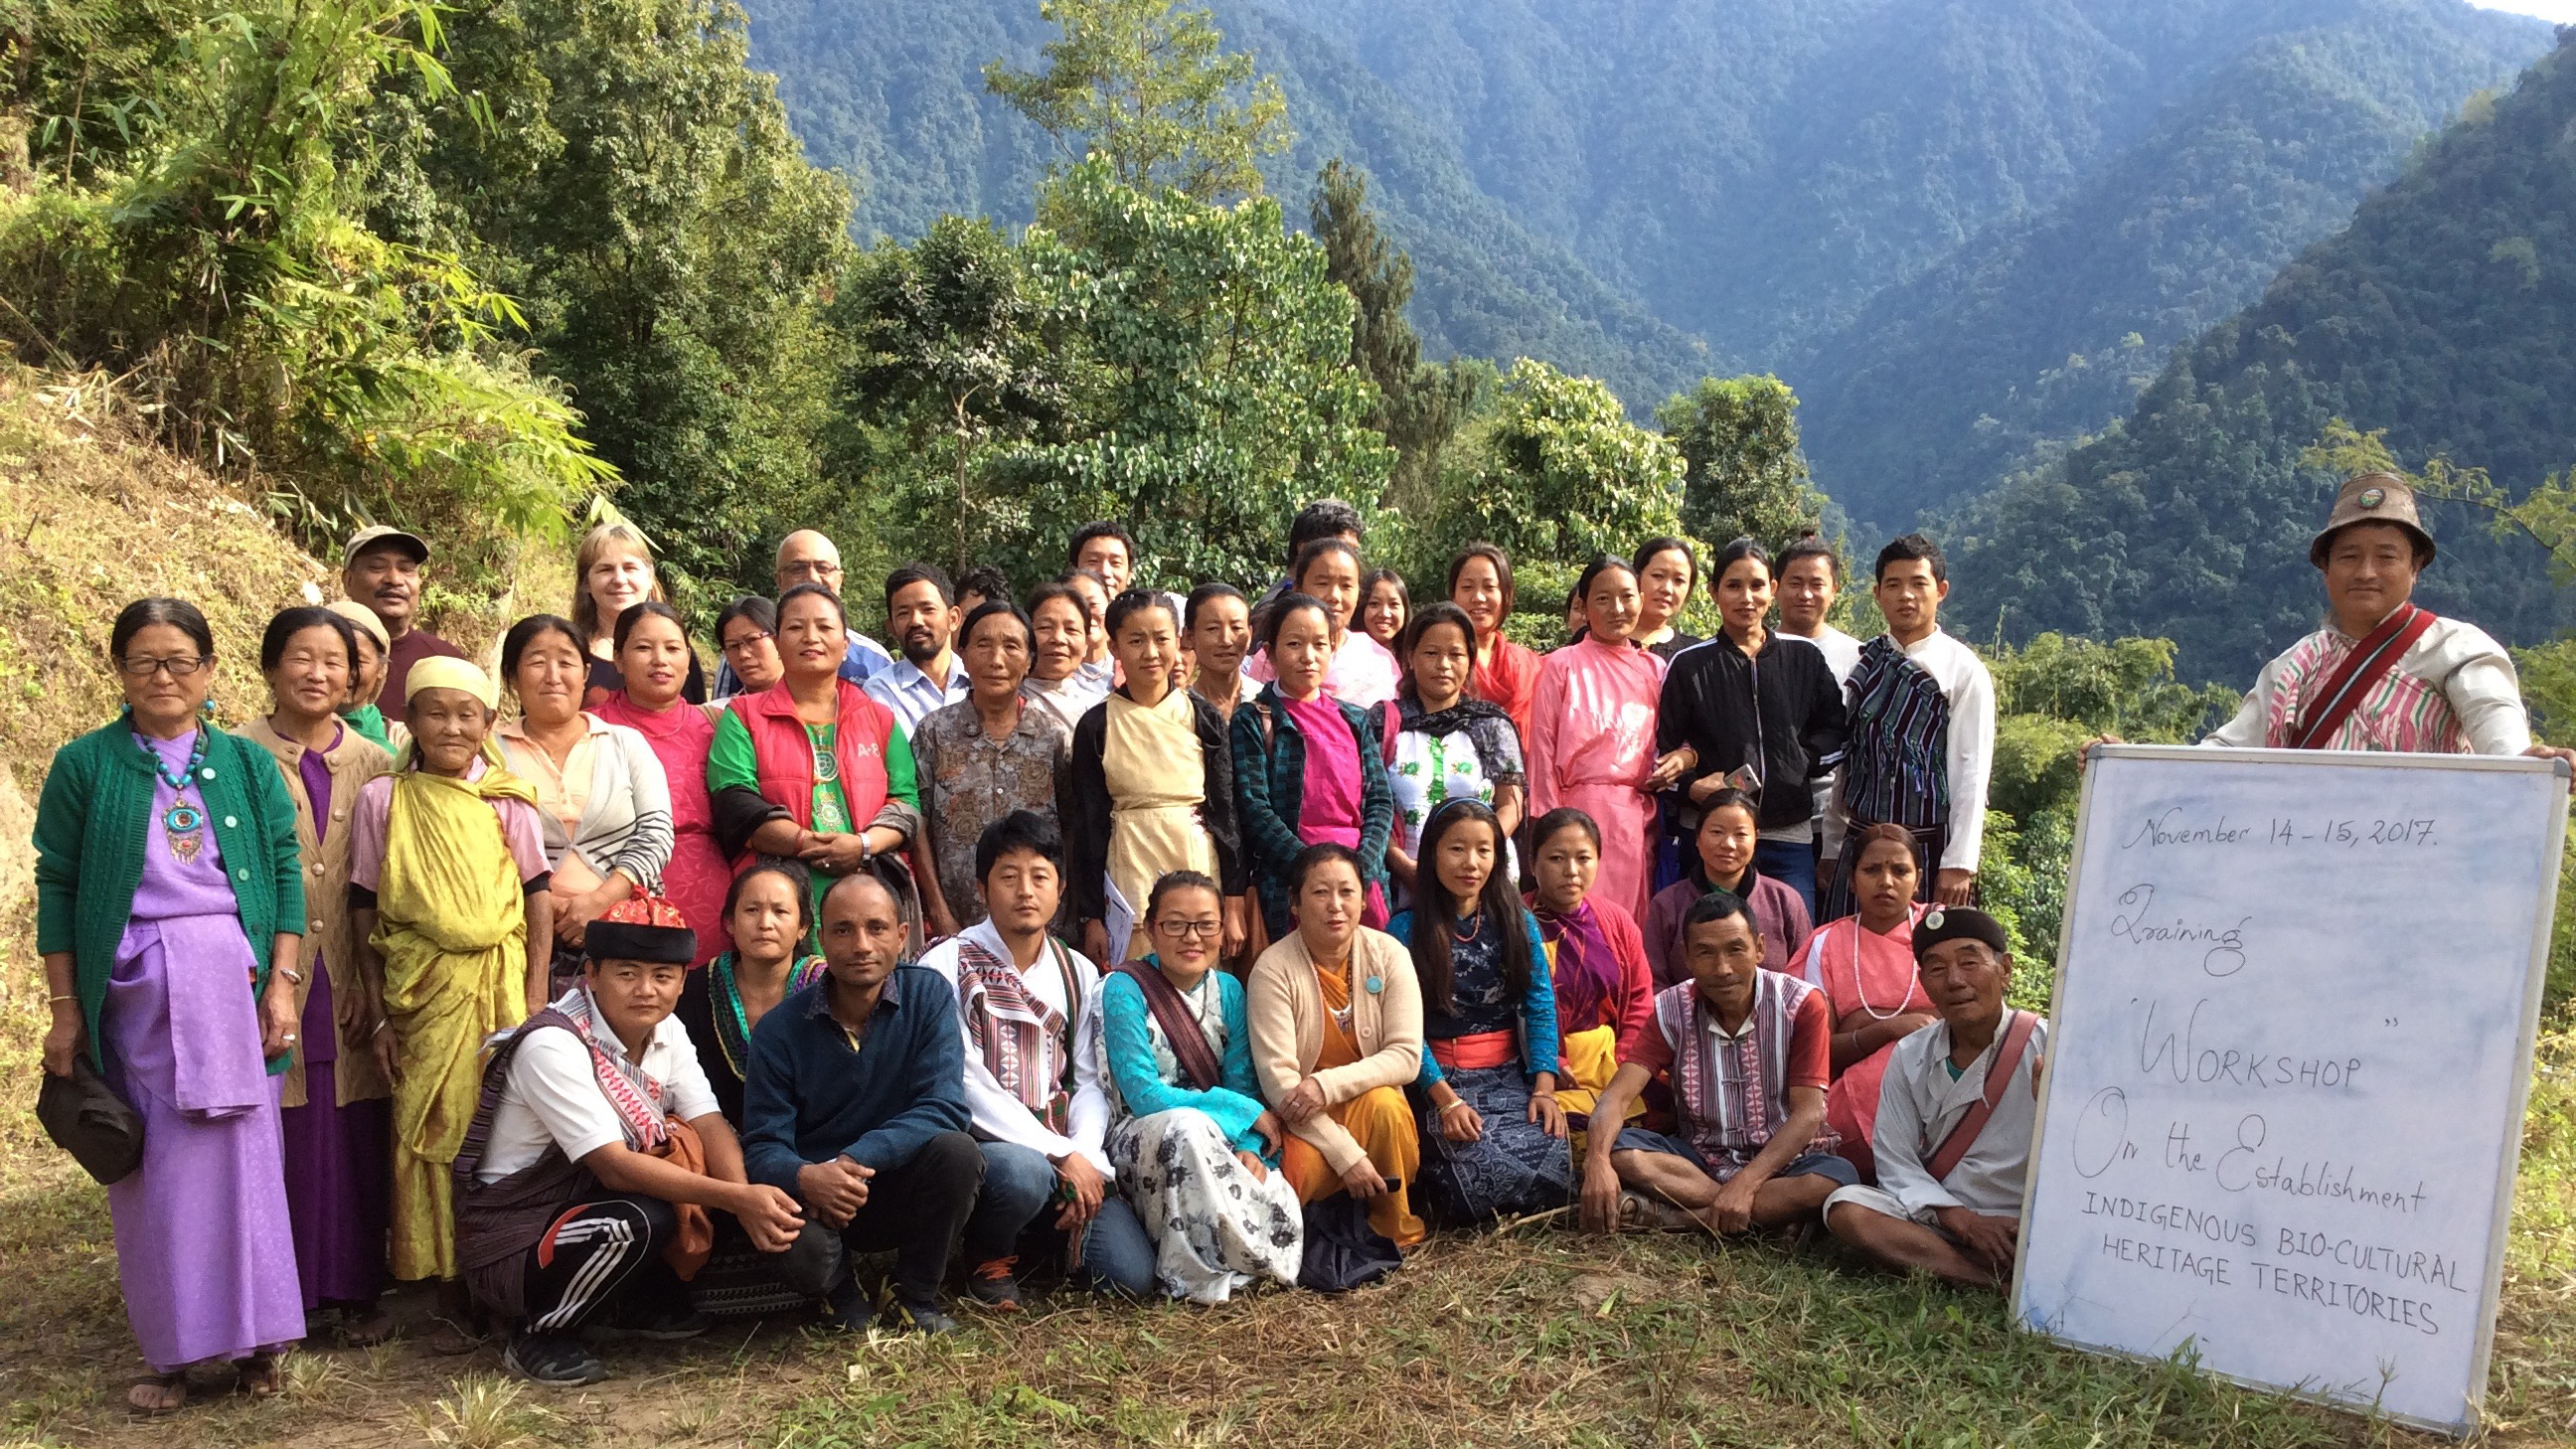 The workshop brought together indigenous mountain people to discuss how to protect their environment and way of life